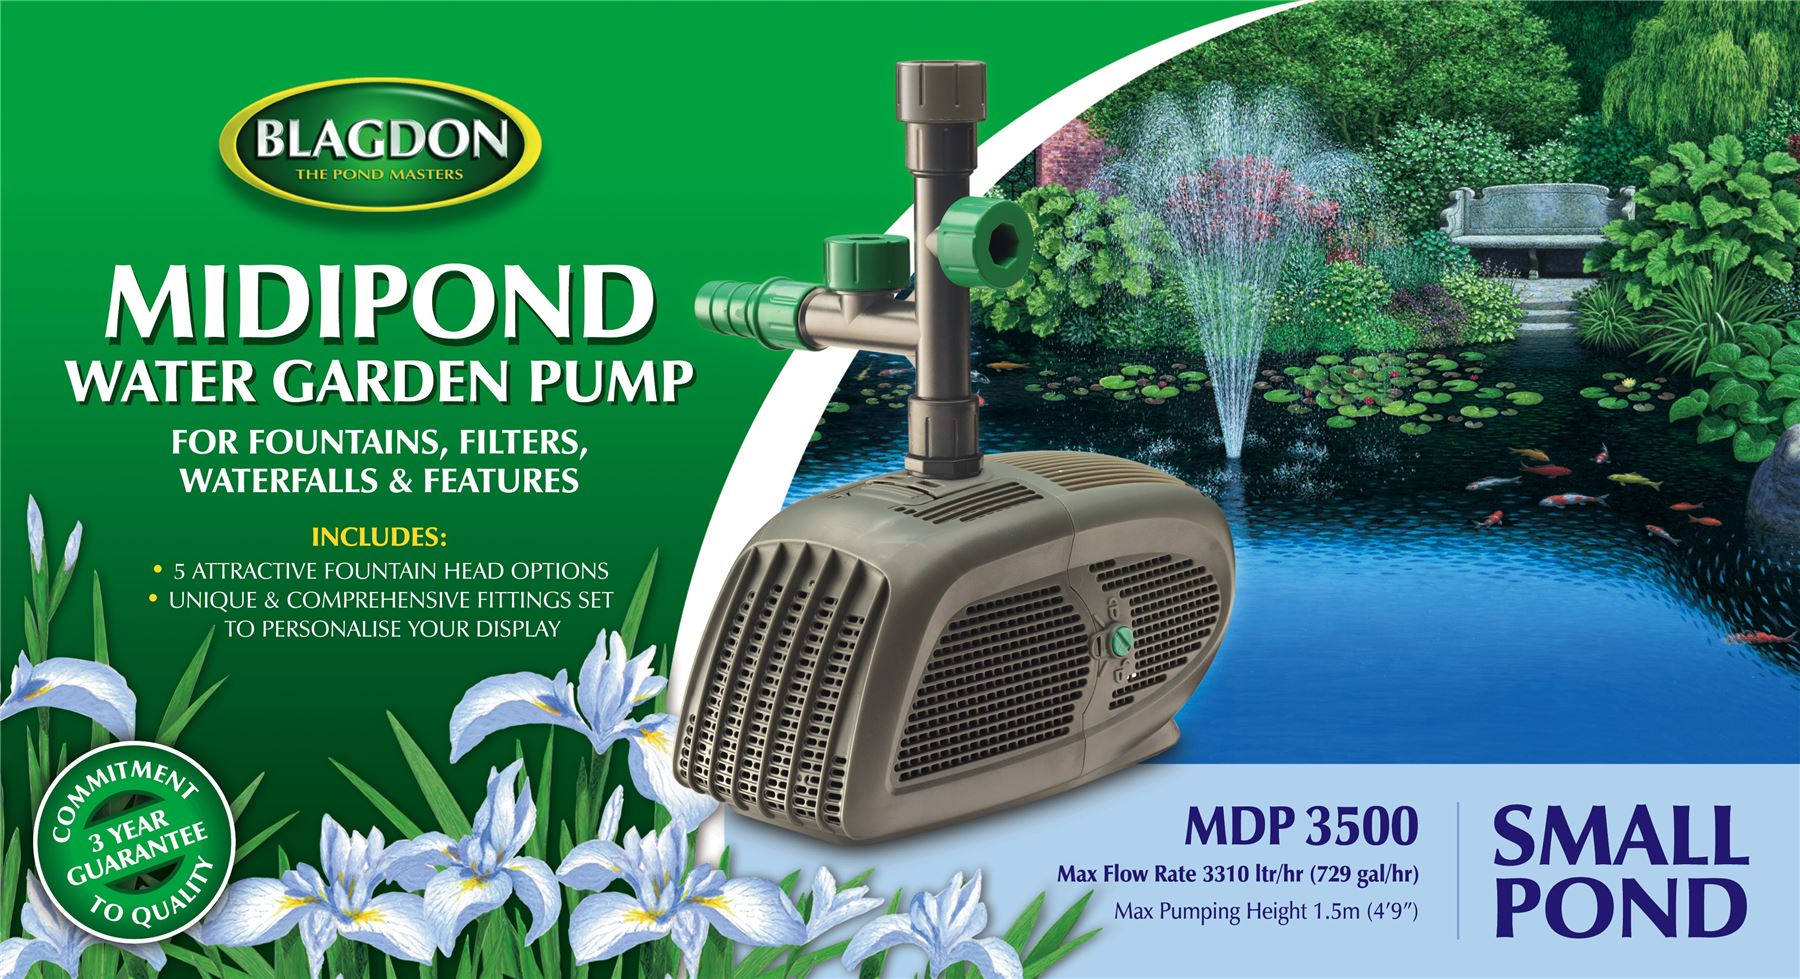 Blagdon Garden Midipond Small Pond Fountain Water Feature Water Pump 3310l Ebay